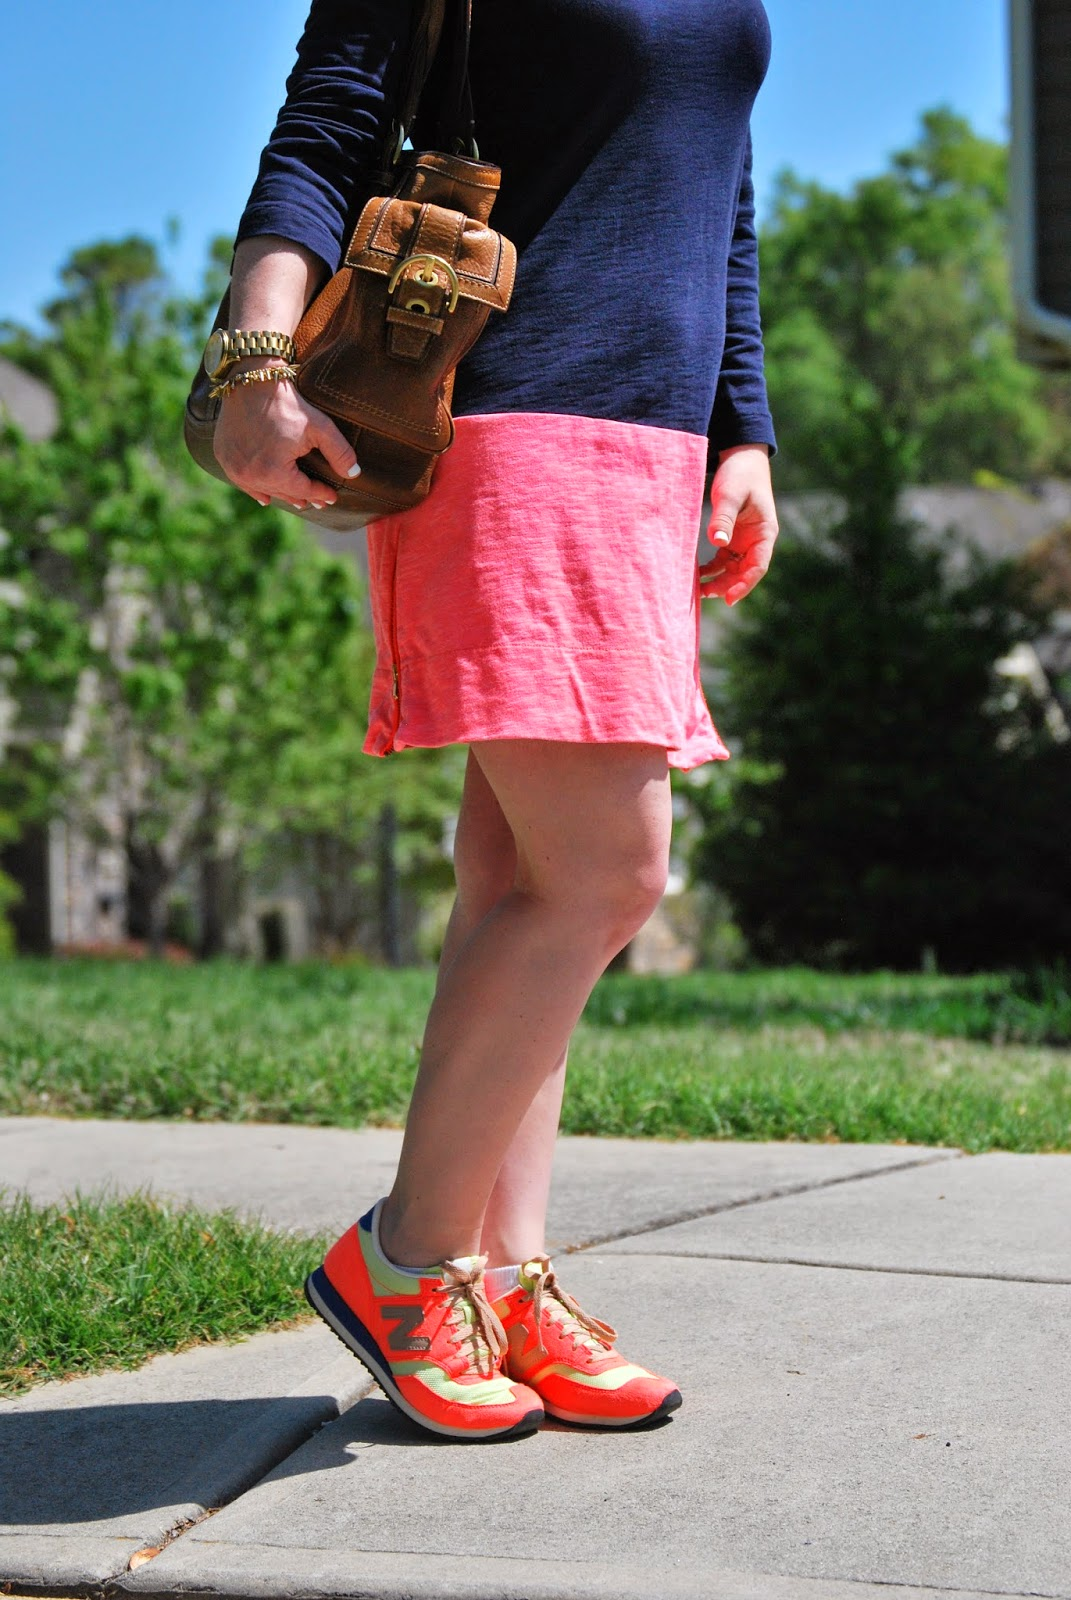 JCrew, New Balance, Coach, sneakers and dress, Coach